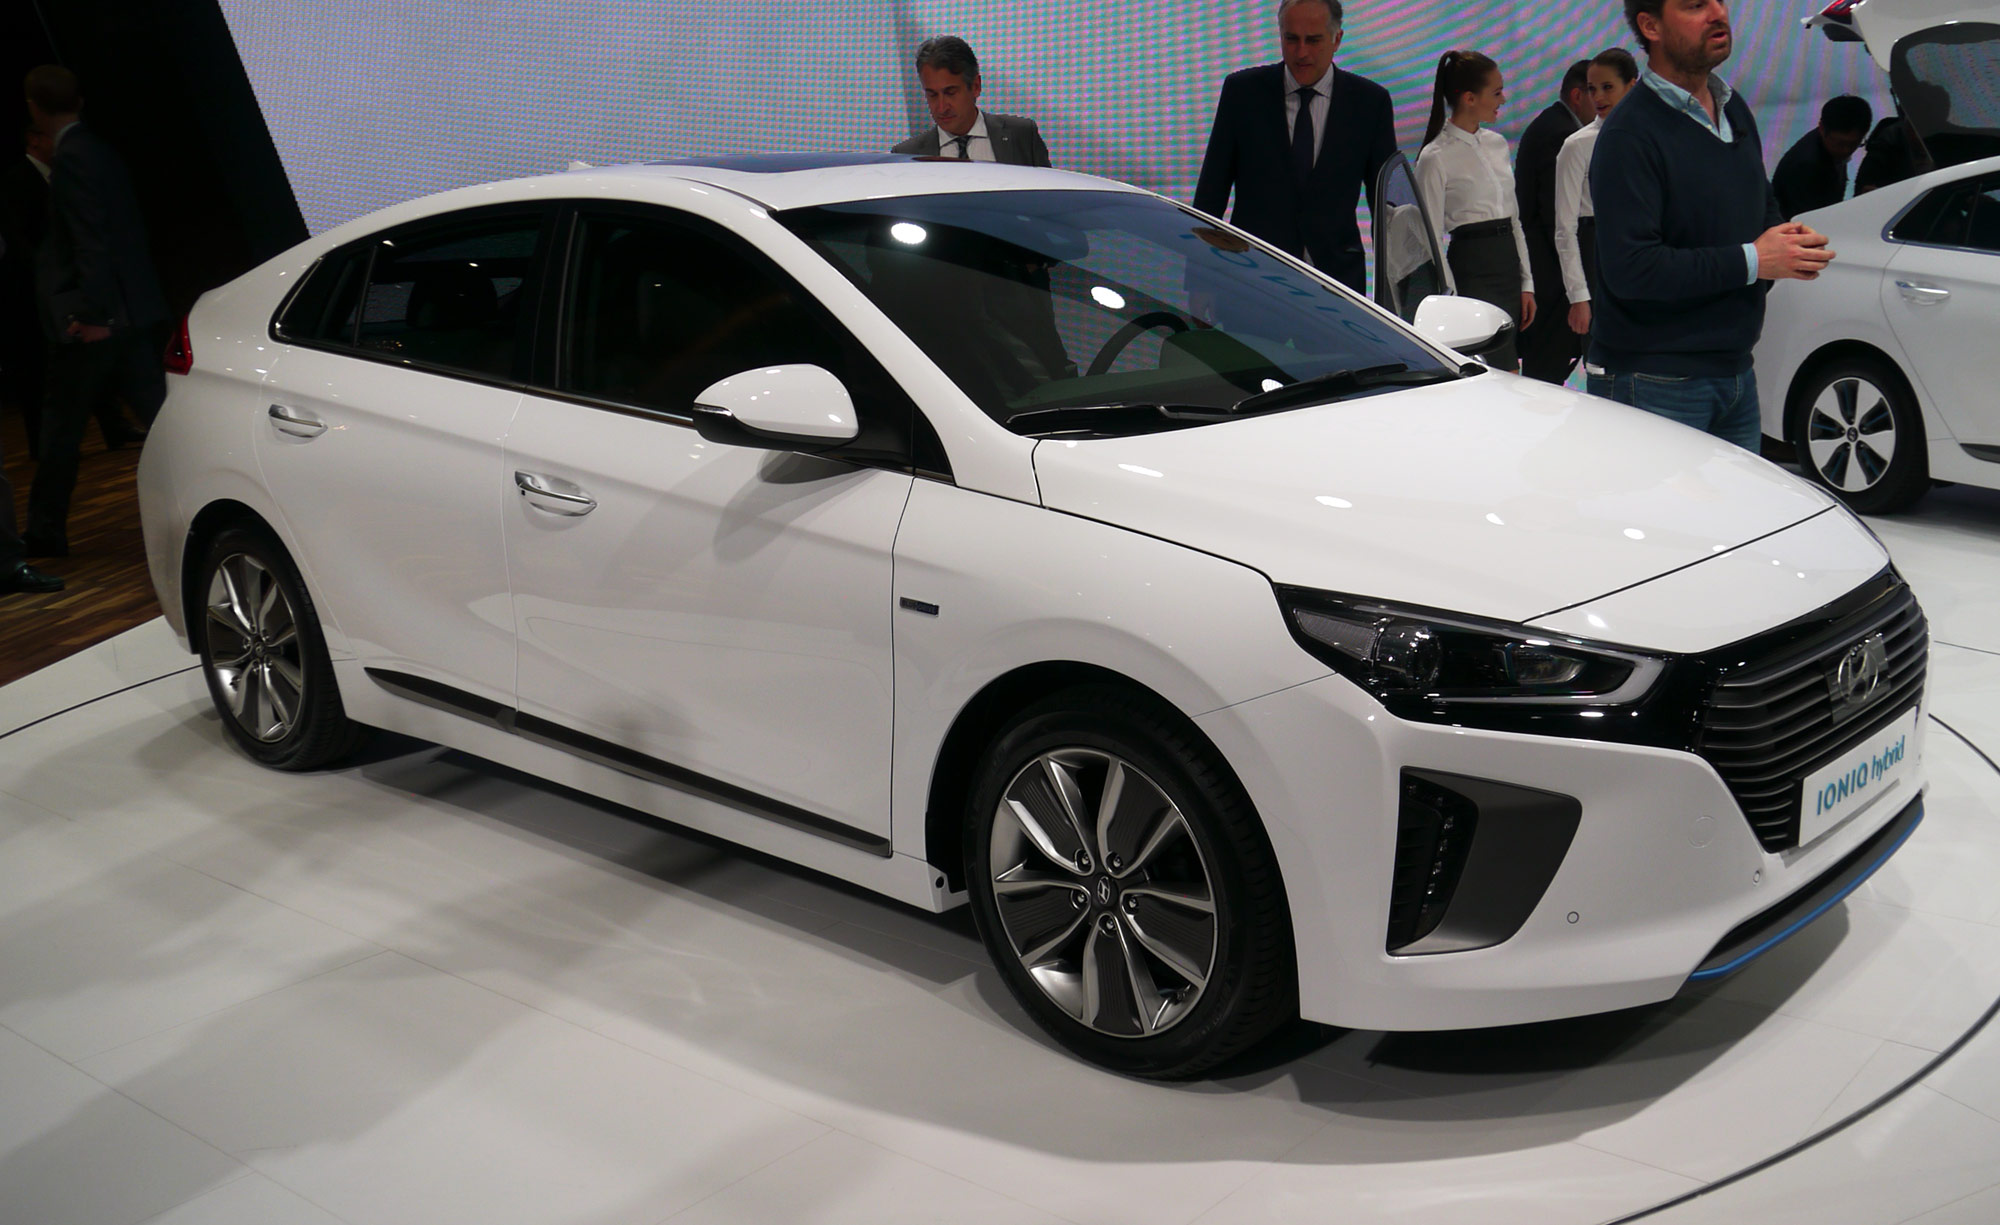 Hyundai Ioniq Hybrid Showcased At Auto China 2016